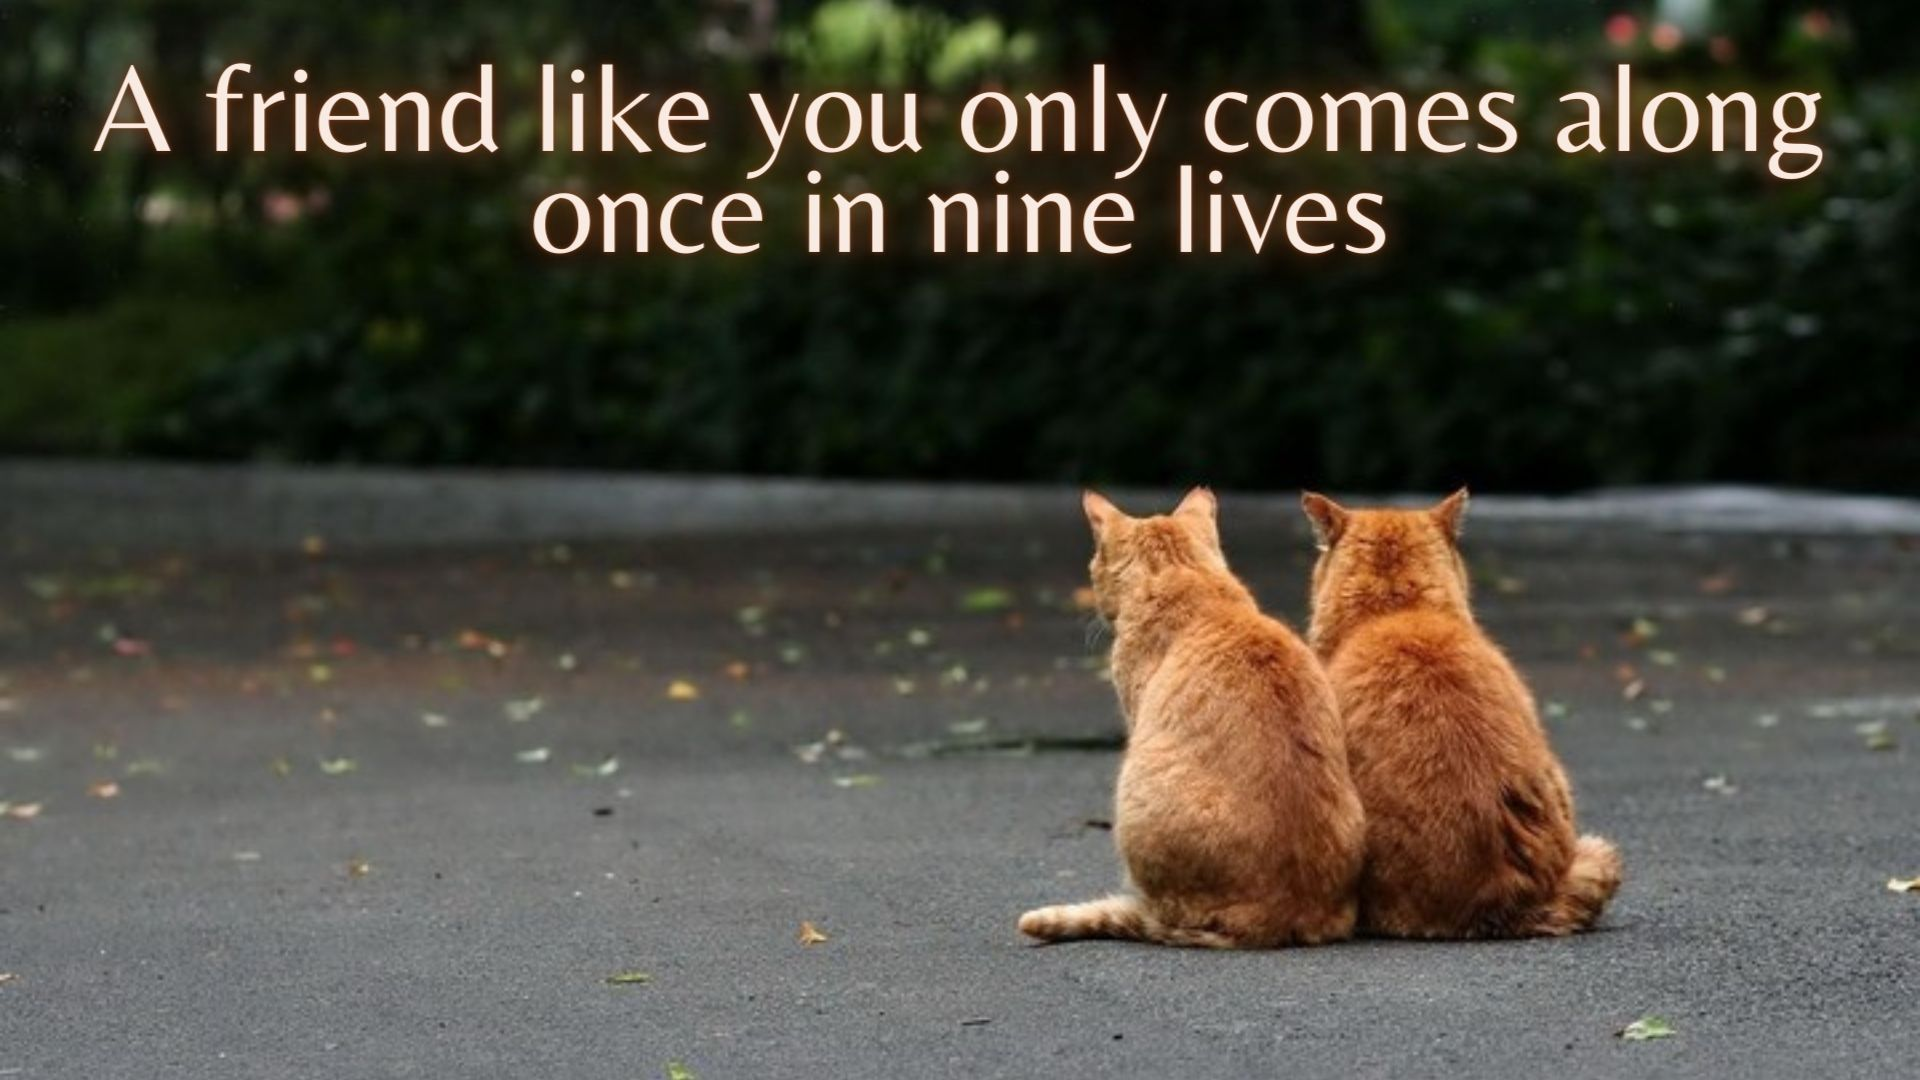 A friend like you only comes along once in nine lives